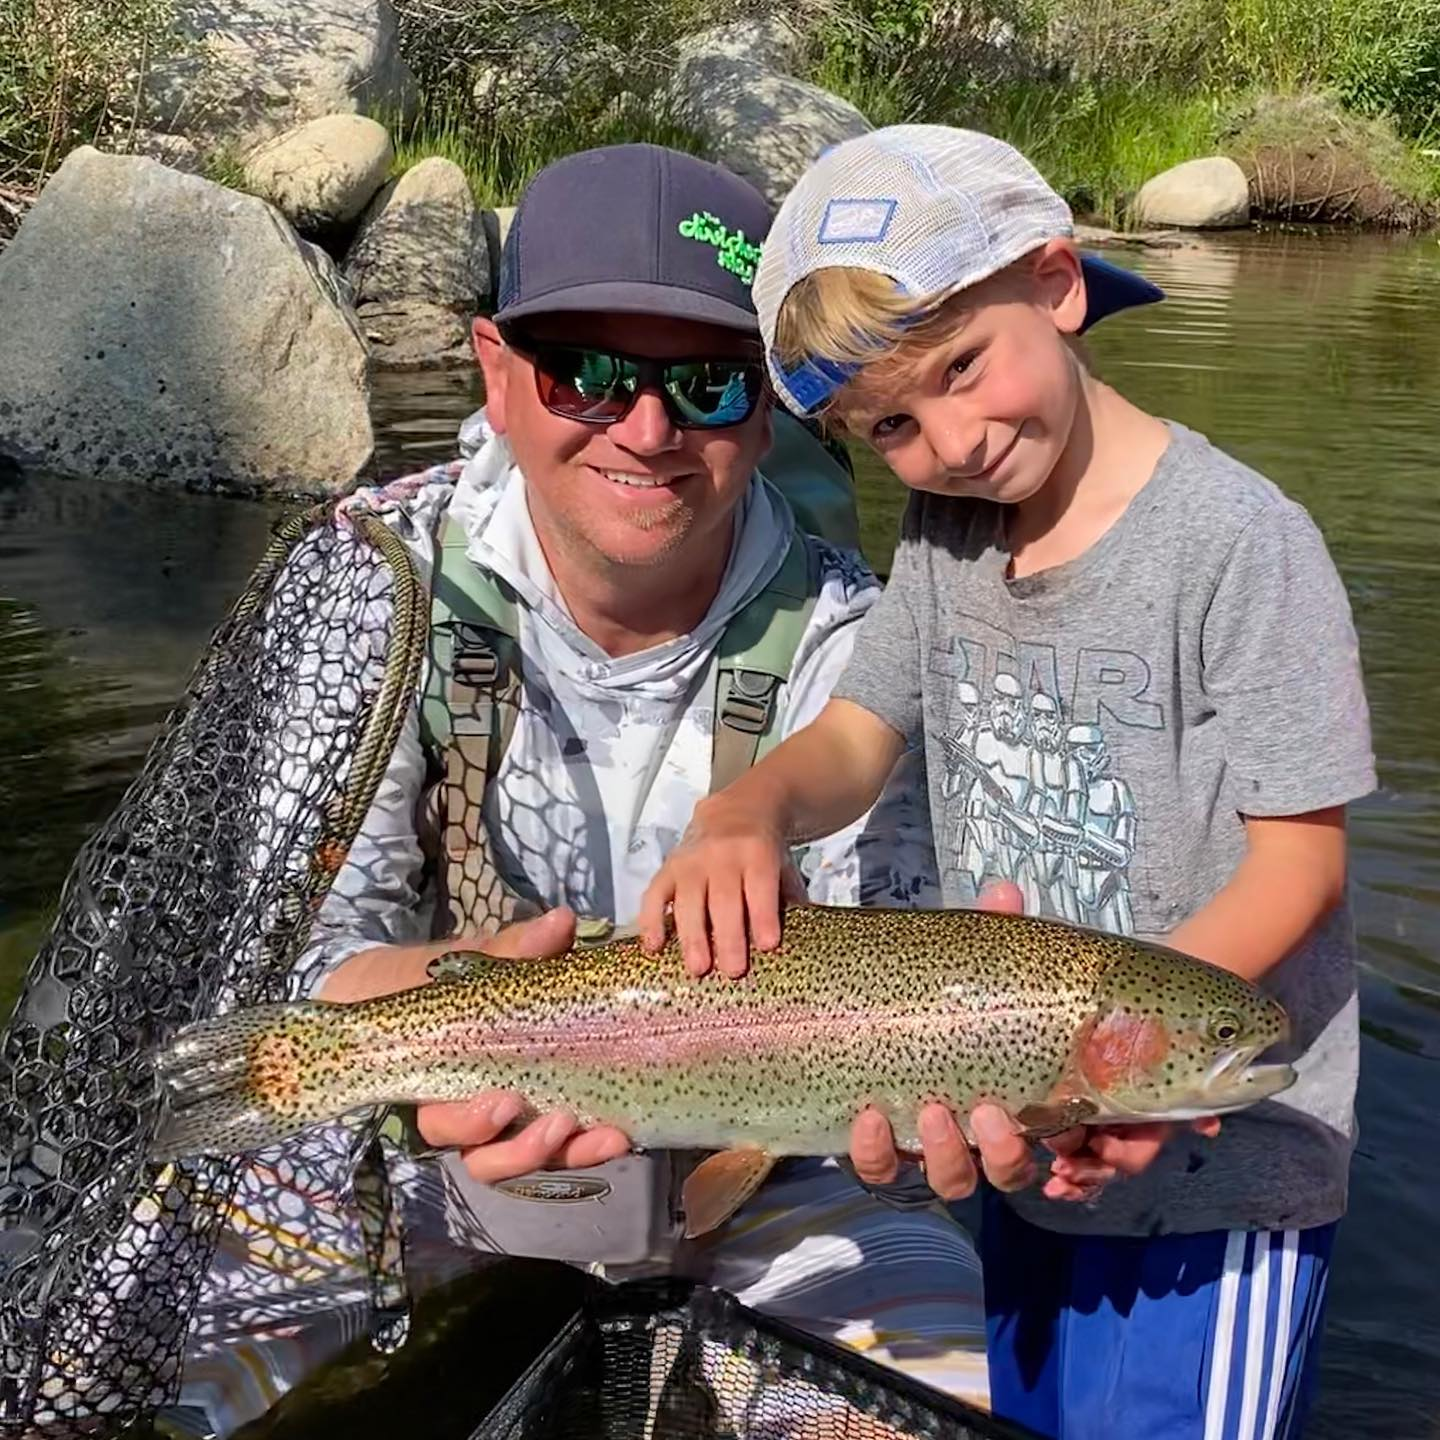 Had a day off and got Walker and his fishing buddy Cole out for an afternoon session … The boys crushed it ! Team work makes the dream work 🤙🏼!Not bad for a few 6 yr olds!#alpineflyfishing #kidsfishing #scottflyrods #seewhatsoutthere #getoutside #takeakidfishing #fishca #catchandrelease #boyswillbeboys #fishpondusa #simmsfishing #flyfishing #sierranevada #dadlife